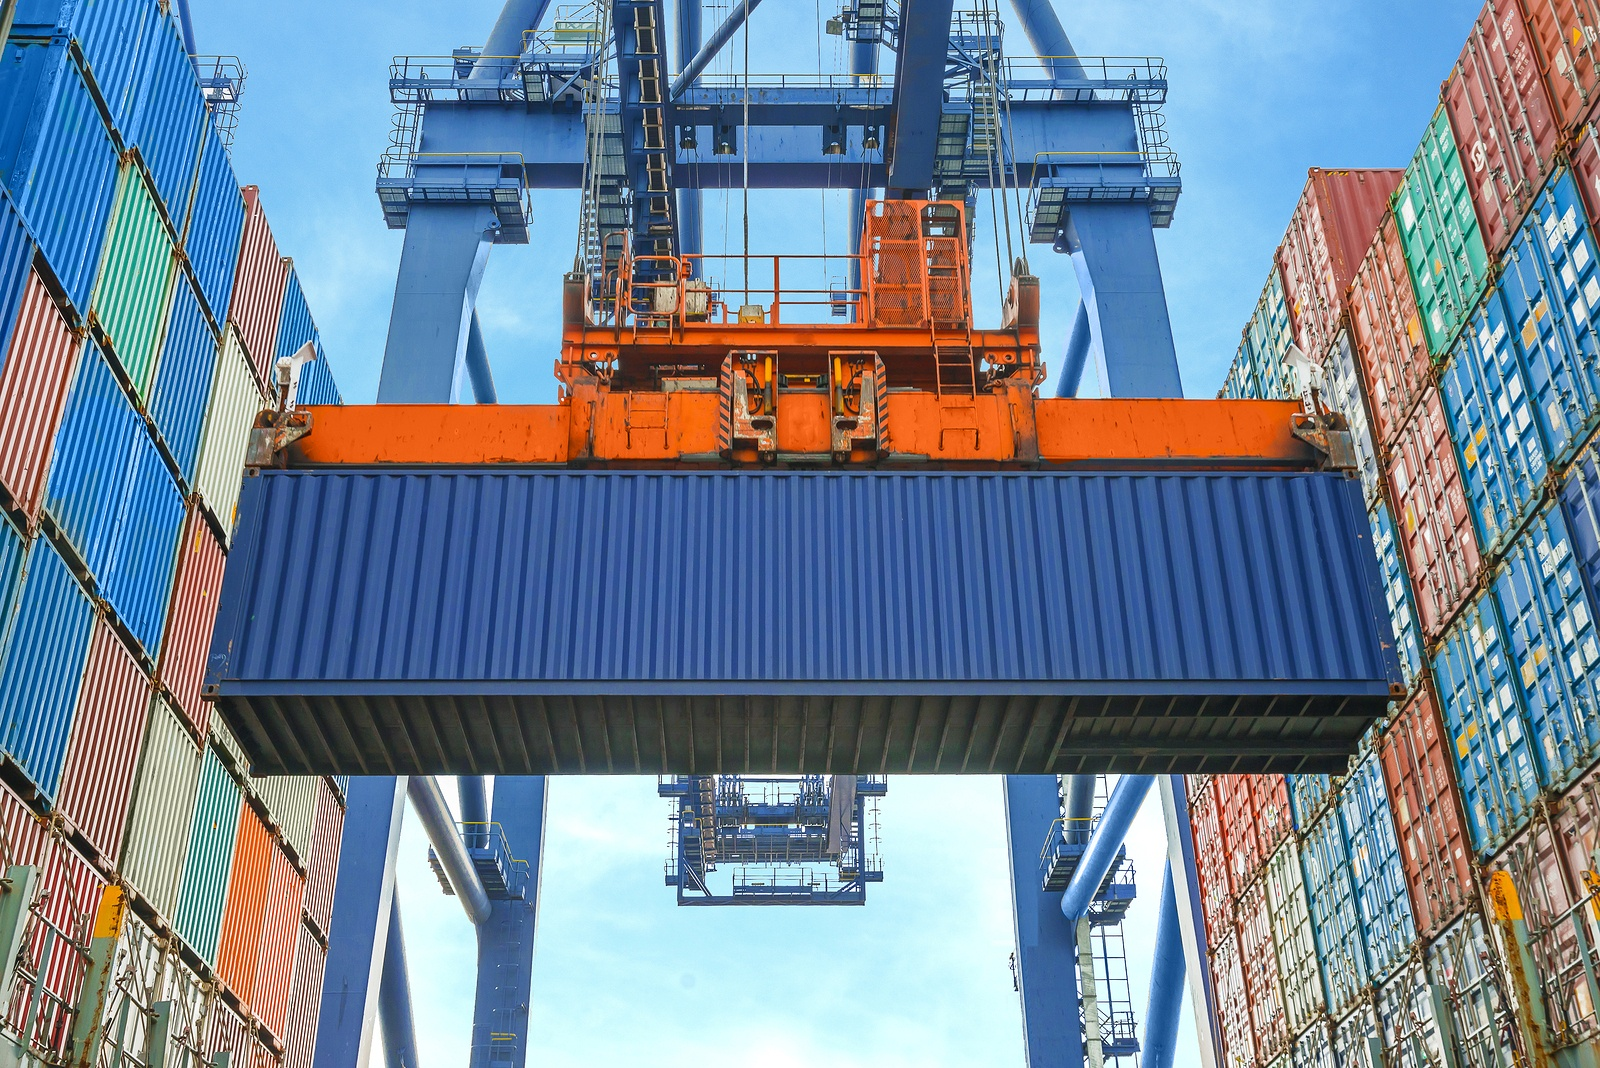 Tradecloud Shore Crane Loading Containers